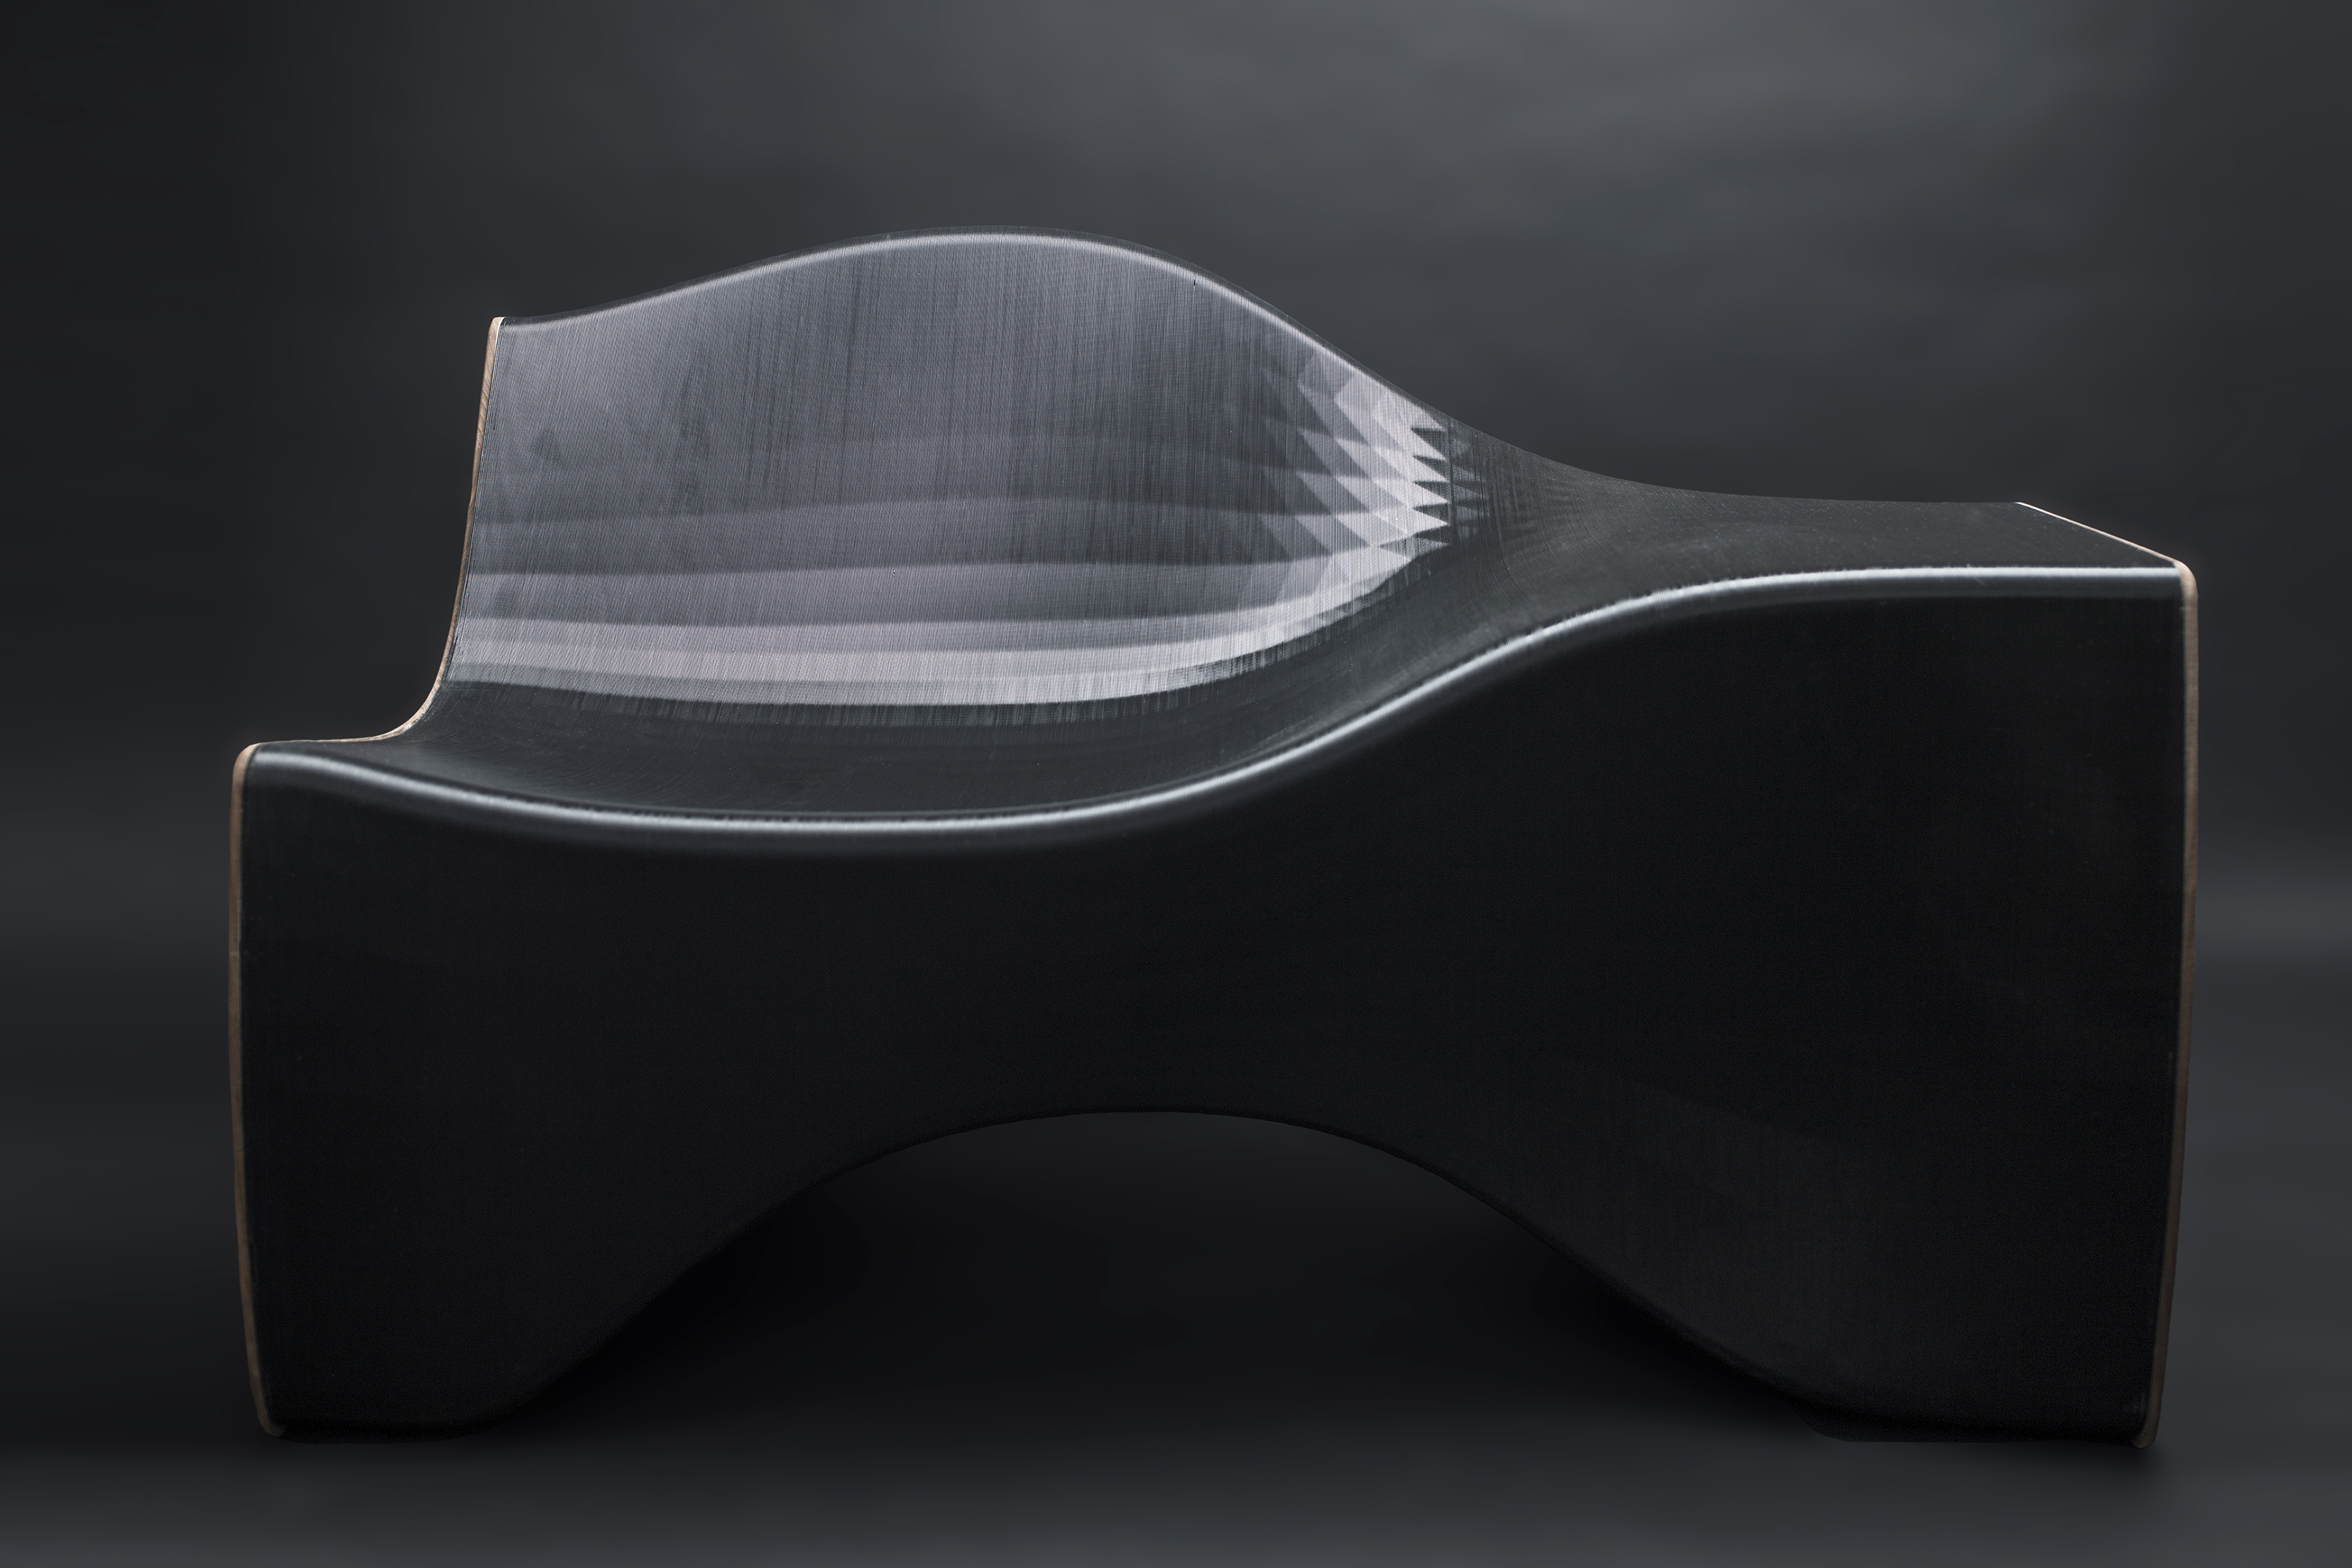 Image of an artfully designed chaise lounge